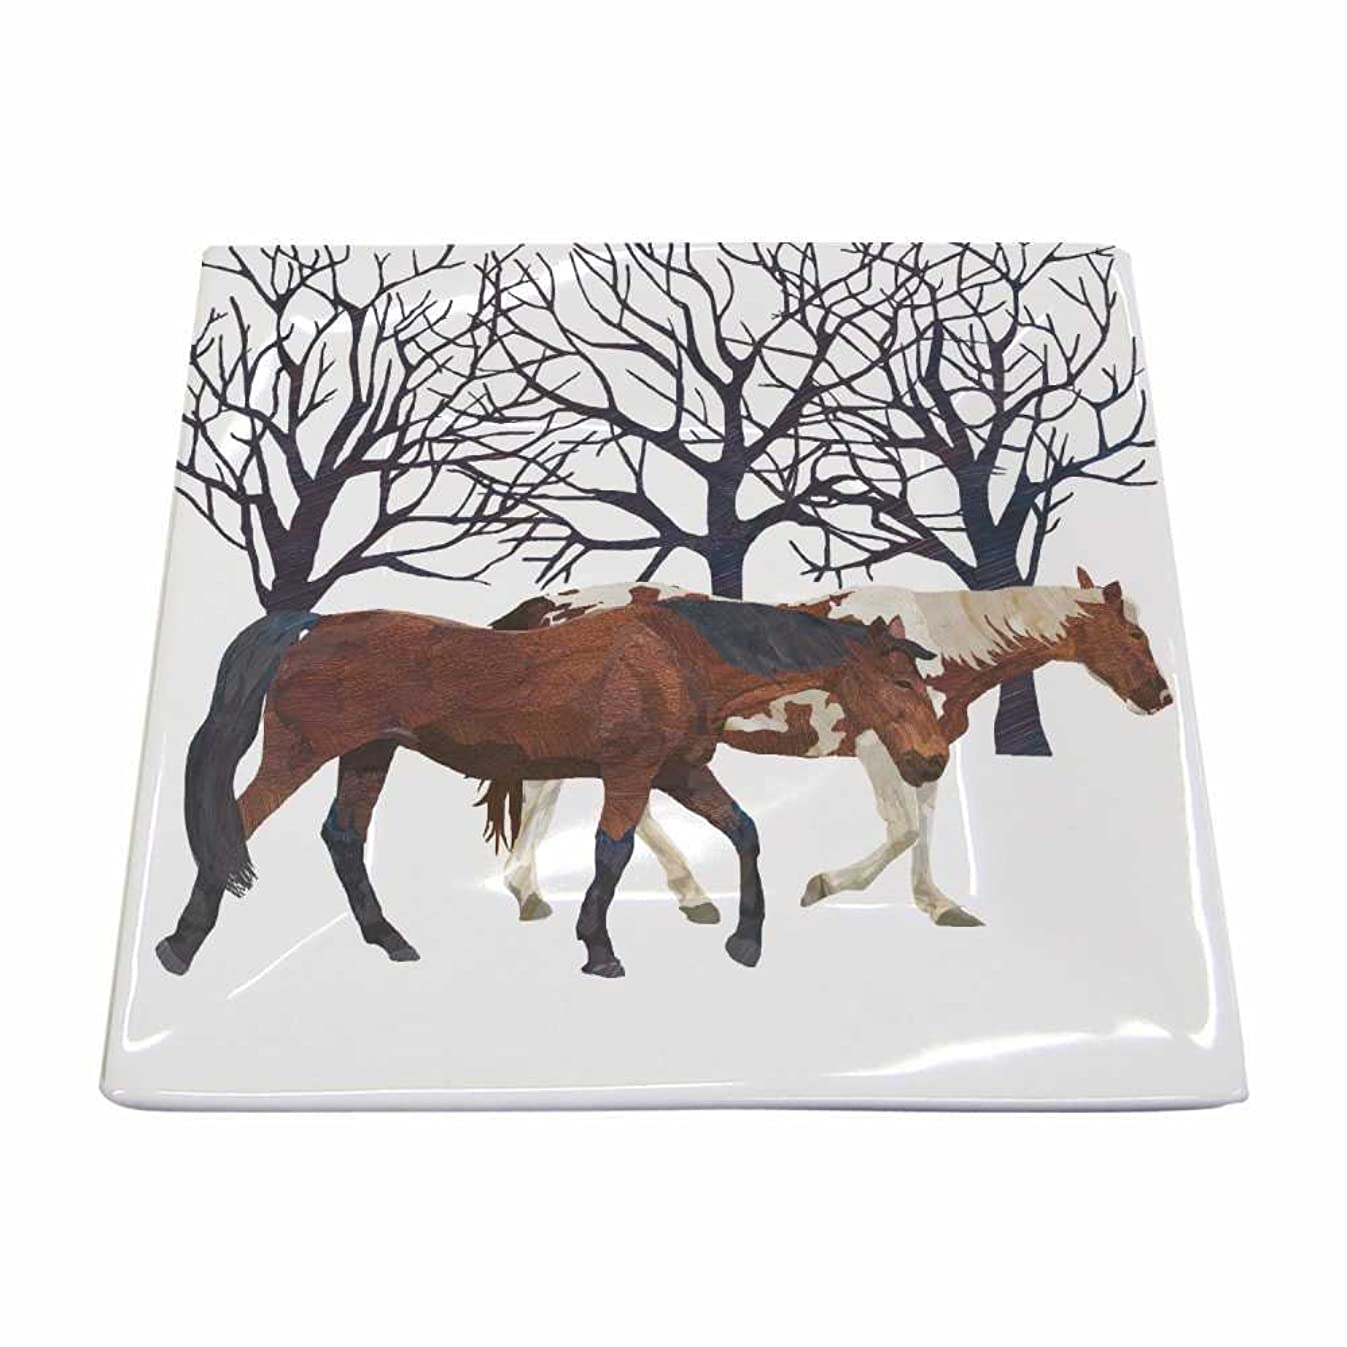 Paperproducts Design New Bone China Small Square Plate Featuring The Distinctive Winter Horses Design, 5.75 x 5.75